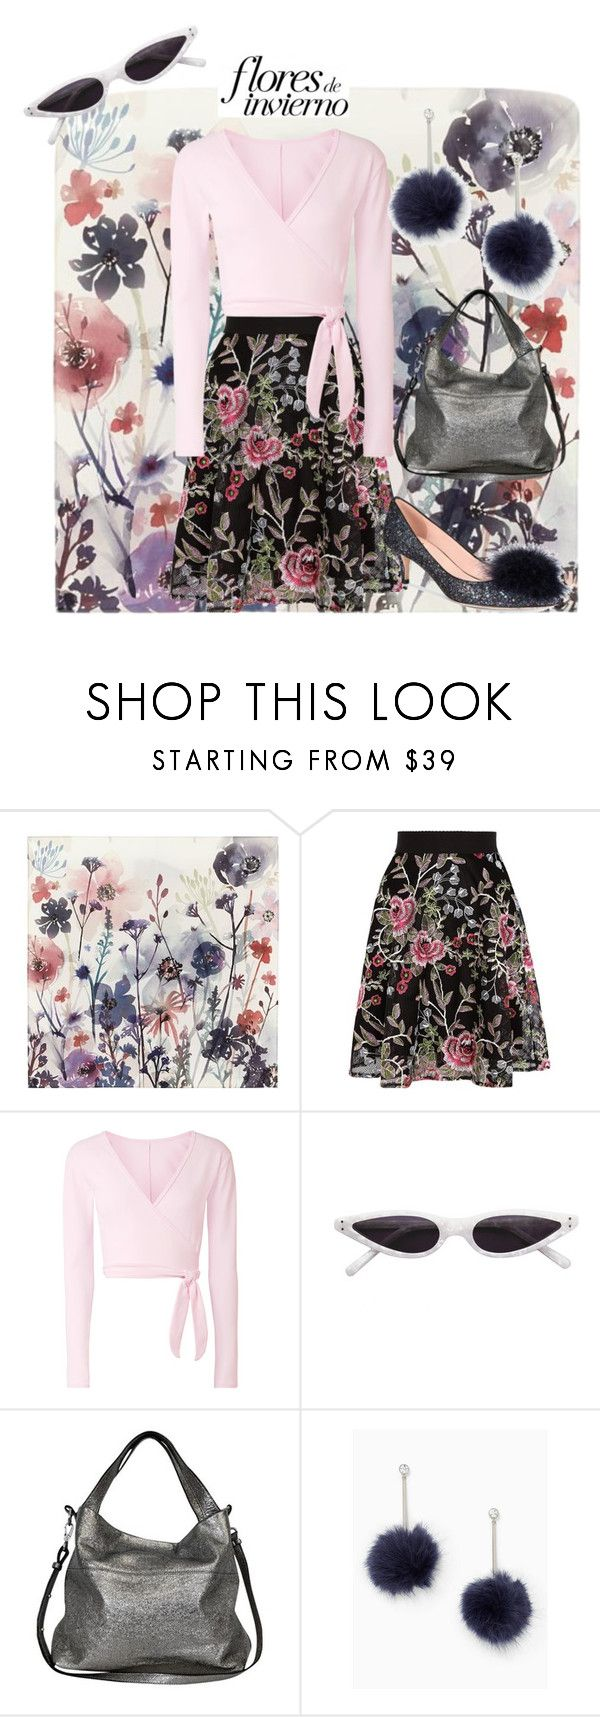 """""""Flowers of Spring"""" by aqualyra ❤ liked on Polyvore featuring PBteen, Ballet Beautiful, Boden, Kate Spade, floralprint, fashionset and spring2018"""